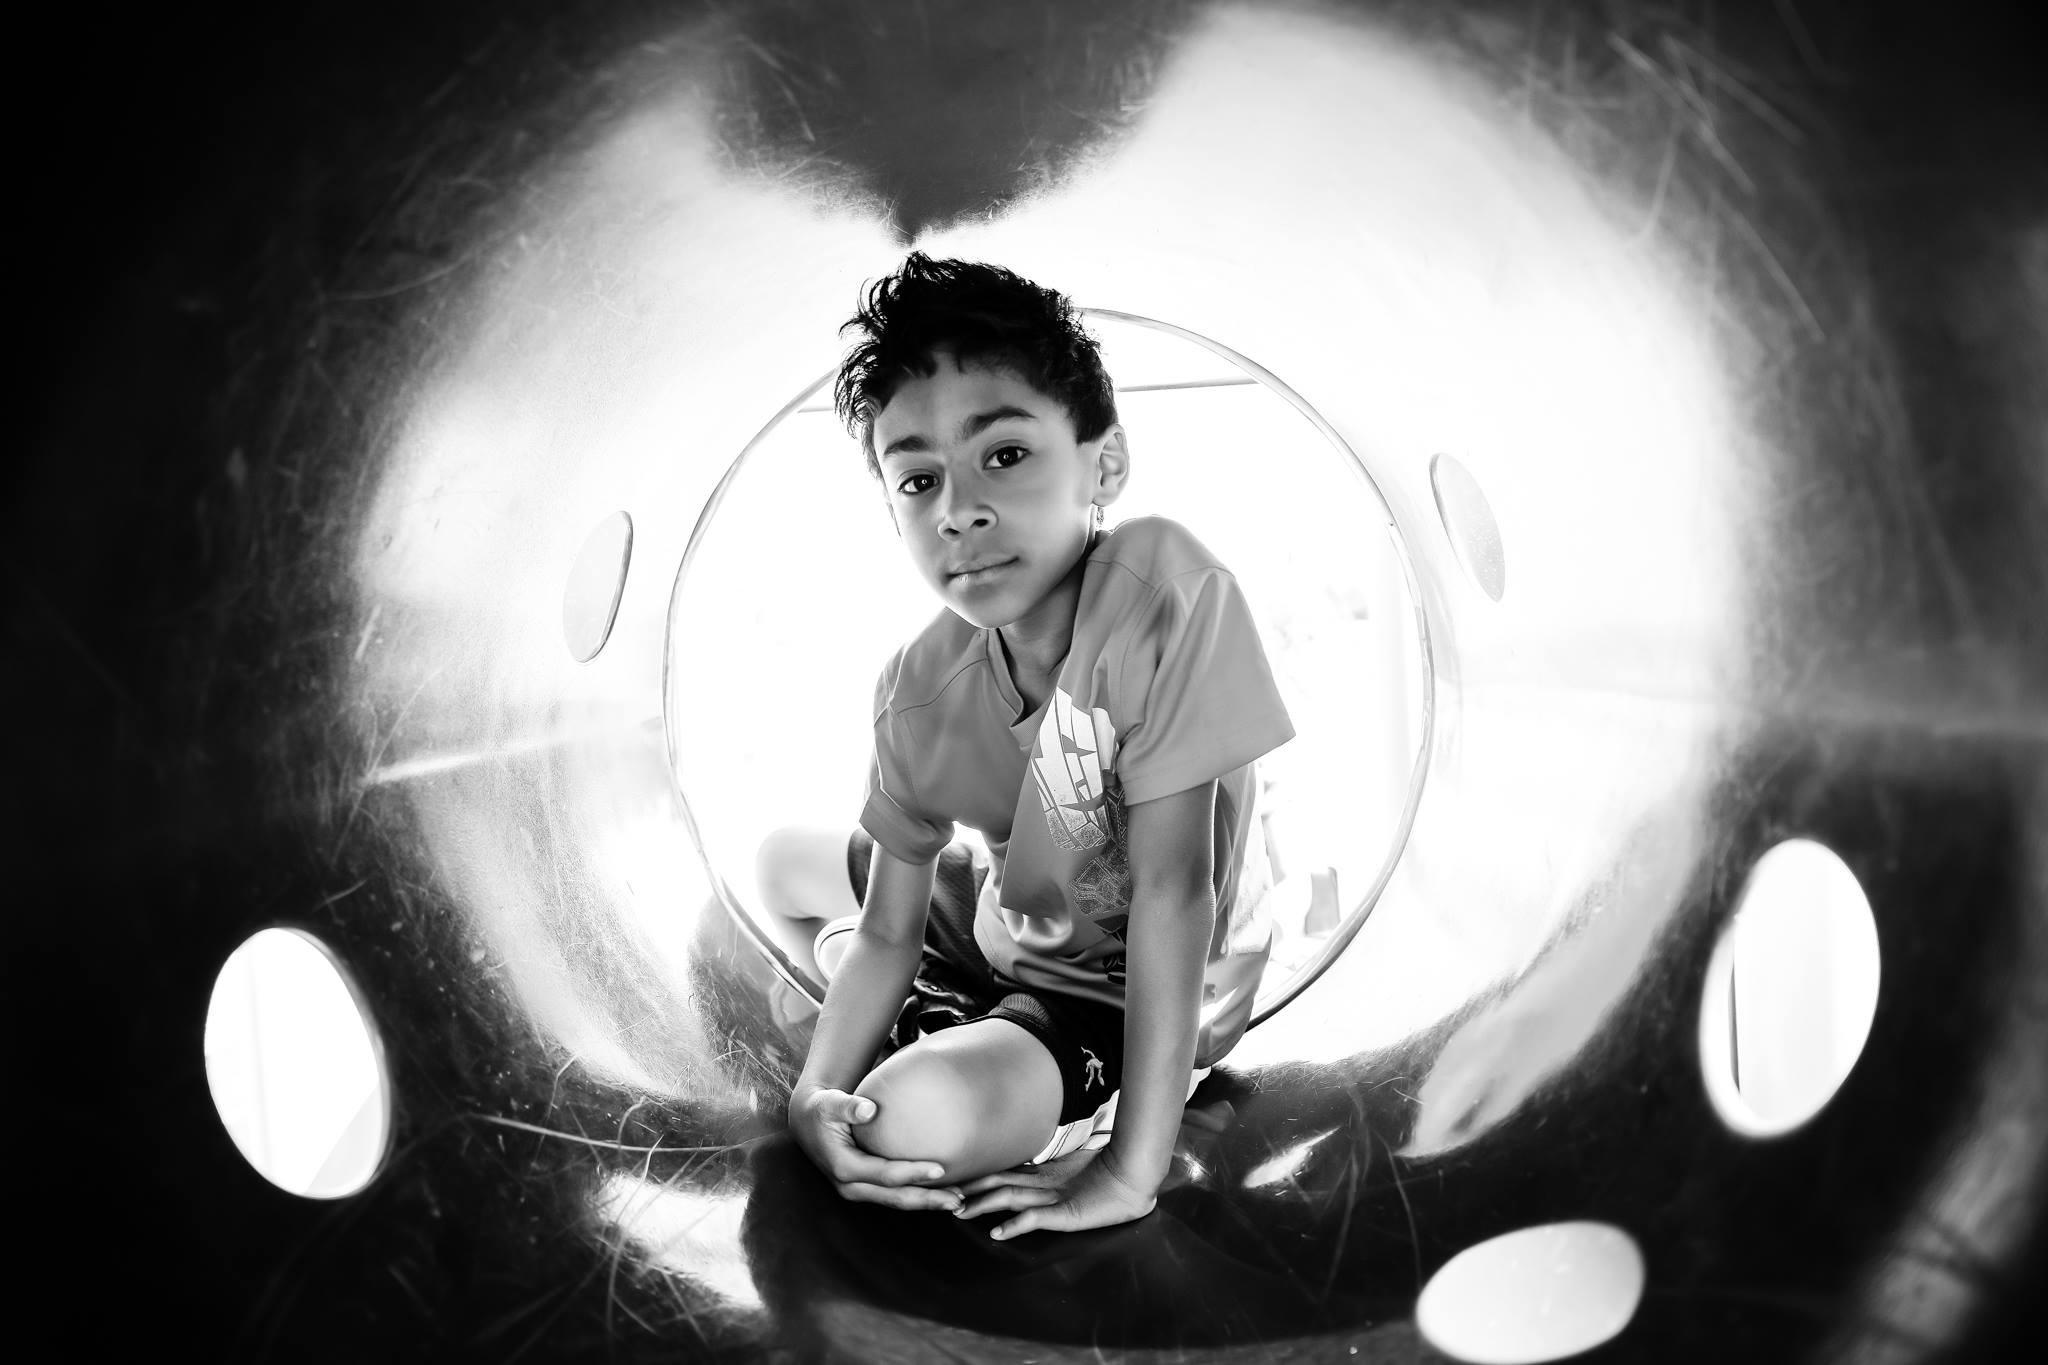 black and white playground pictures, daily fan favorite